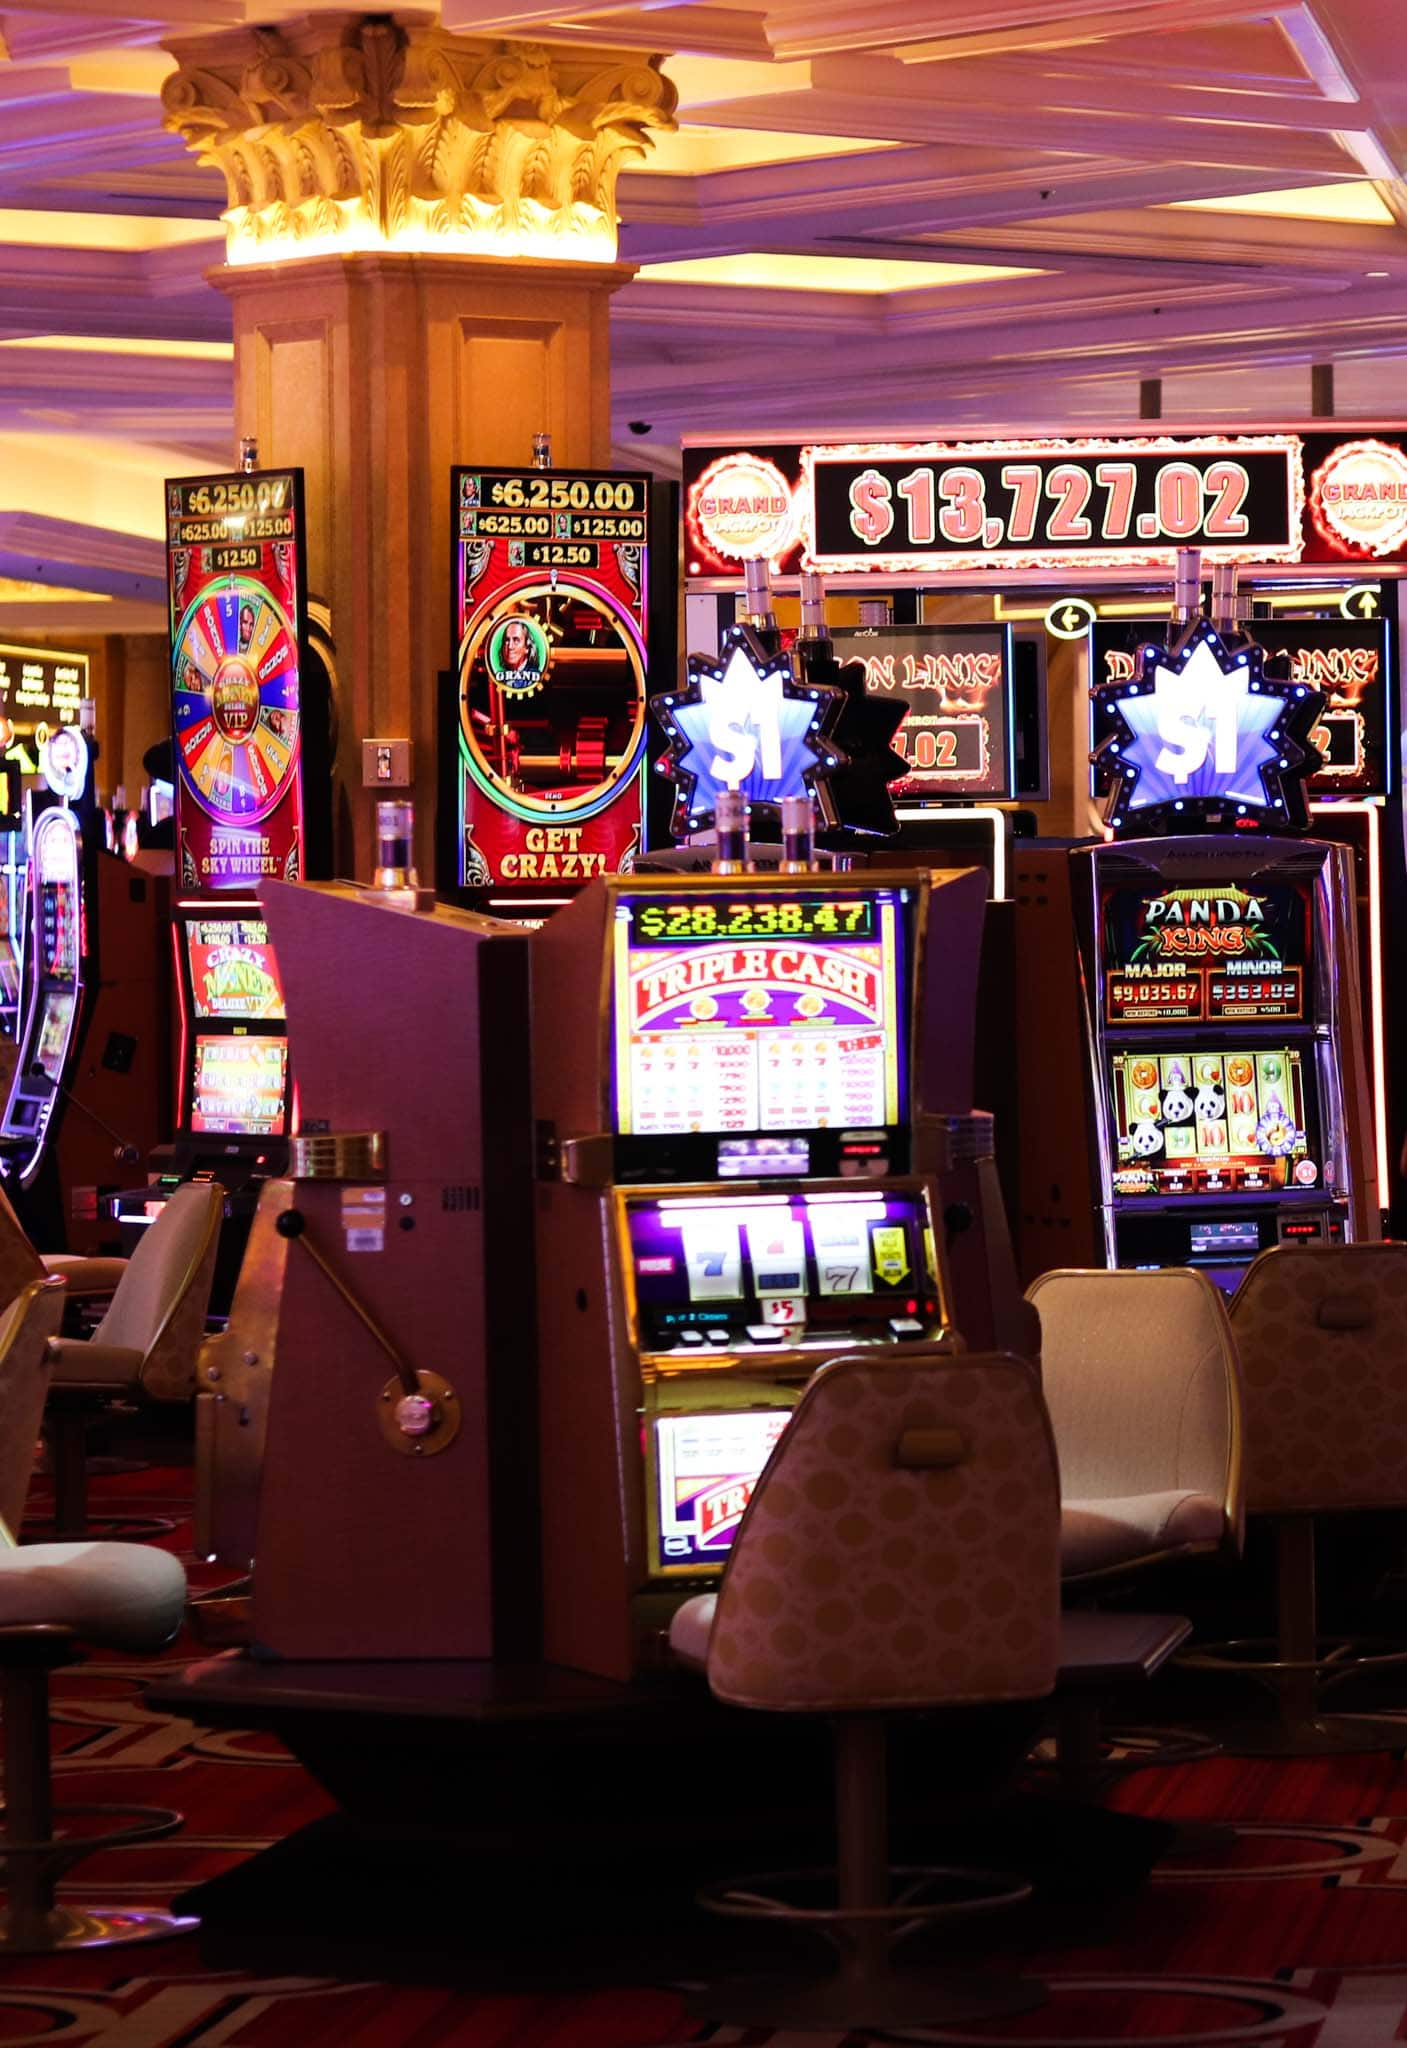 A view inside a Las Vegas casino with lots of neon lights and slot machines.